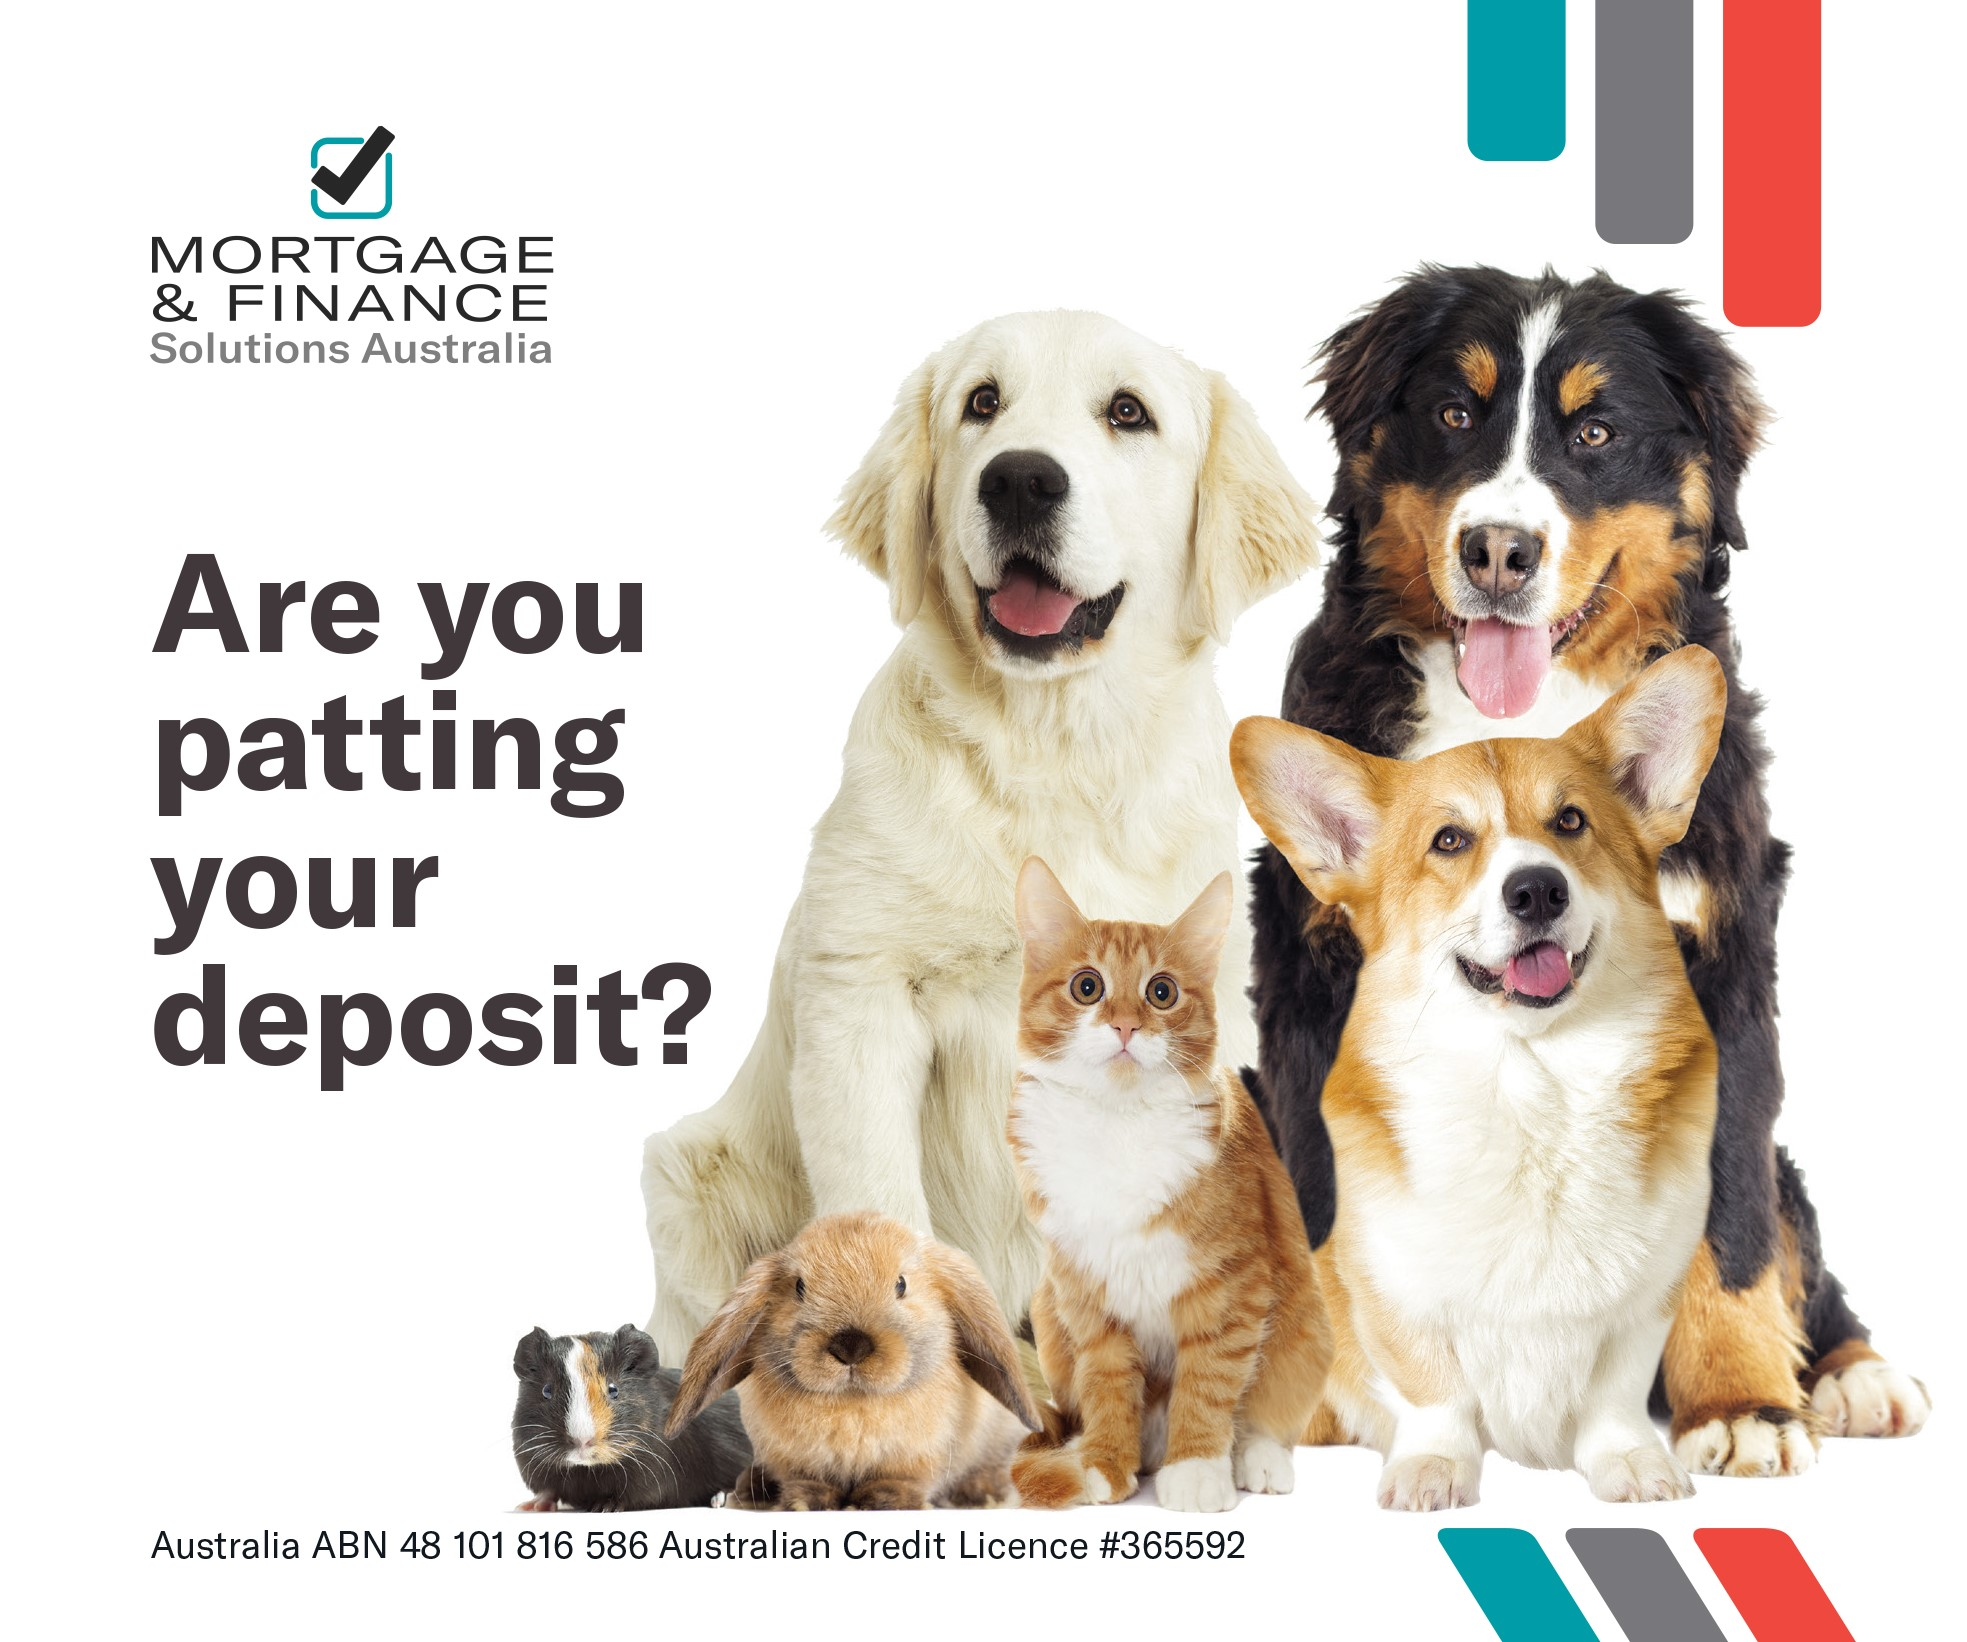 Are you patting YOUR DEPOSIT?